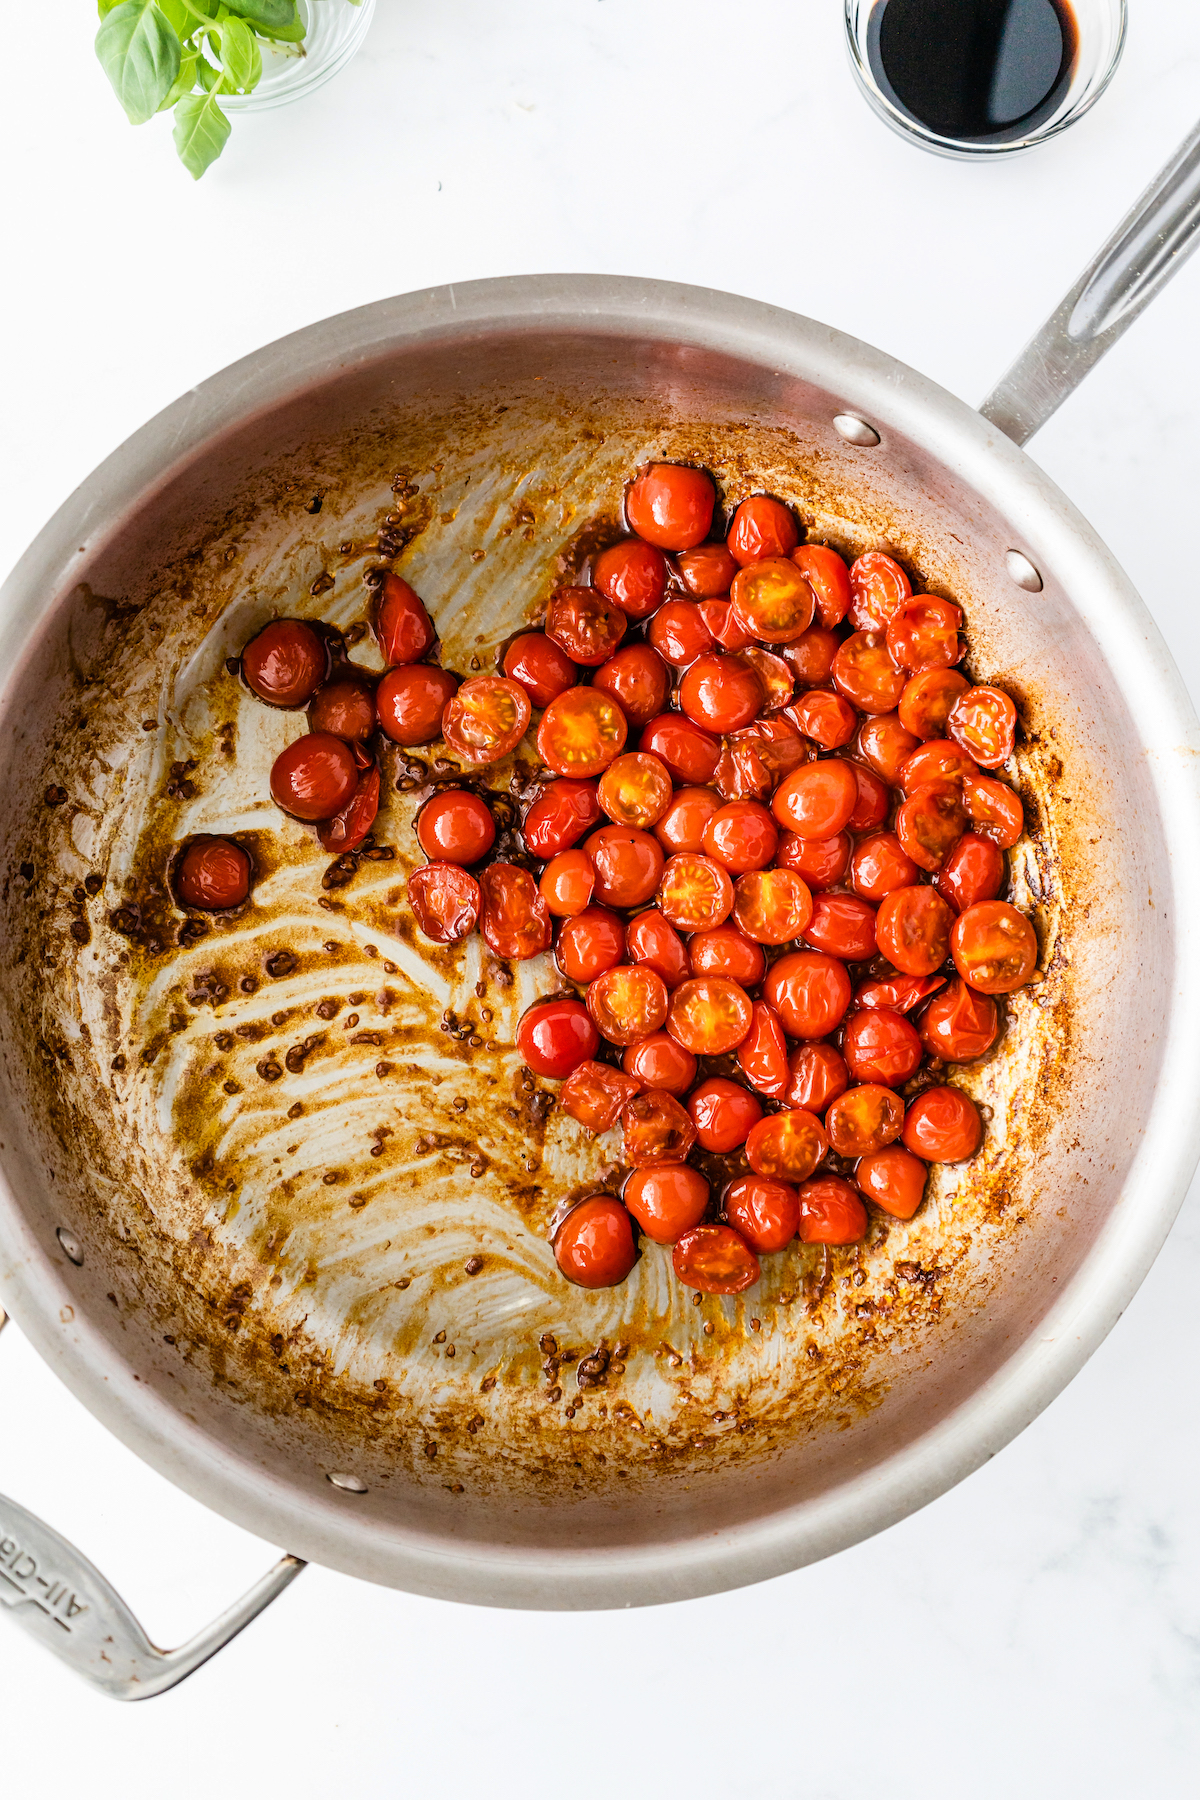 Cherry tomatoes sautéed in a pan.